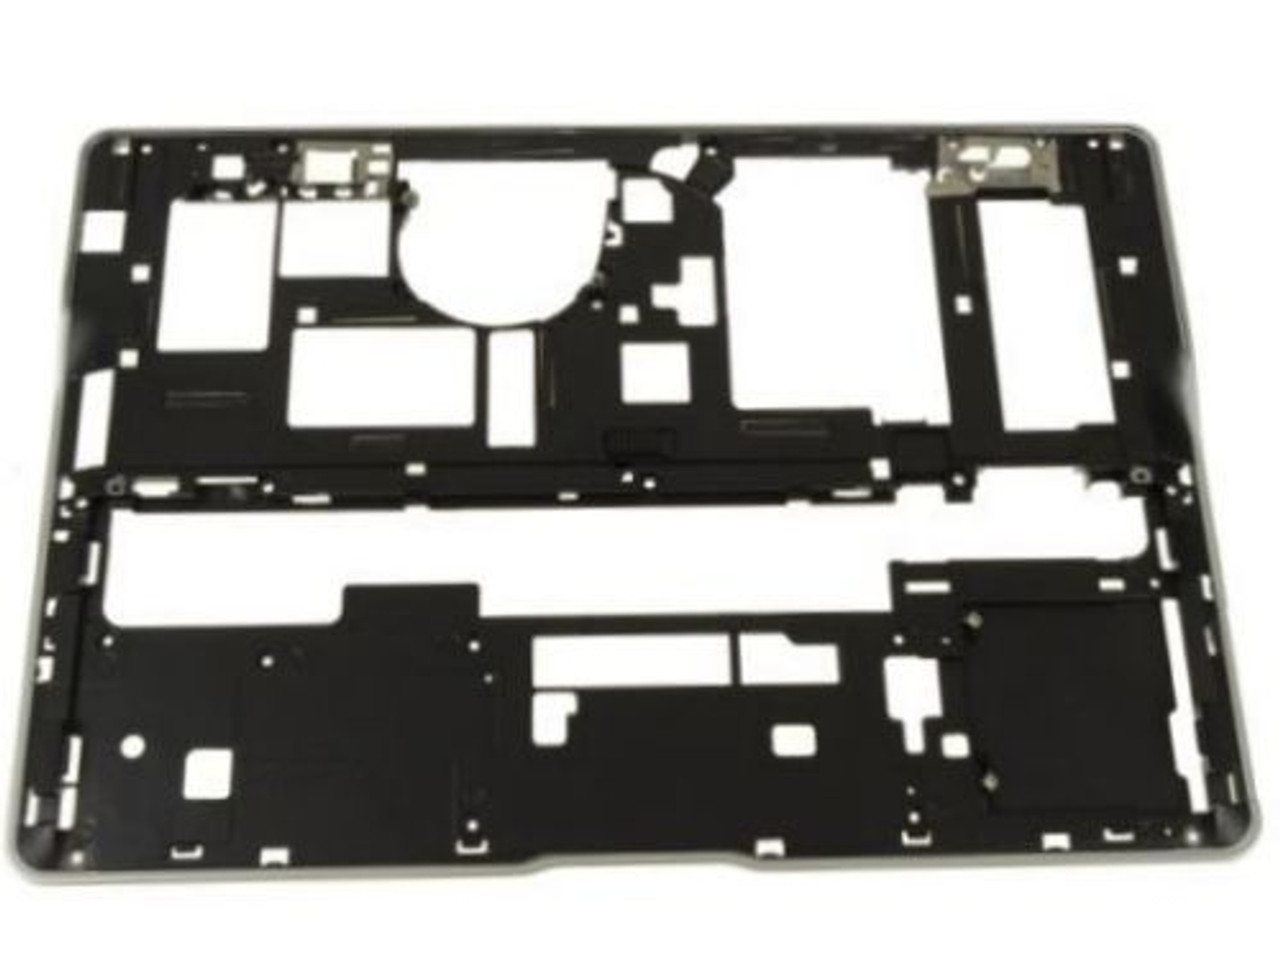 New Dell Latitude 6430u Laptop Bottom Base Chassis Assembly - DH60N